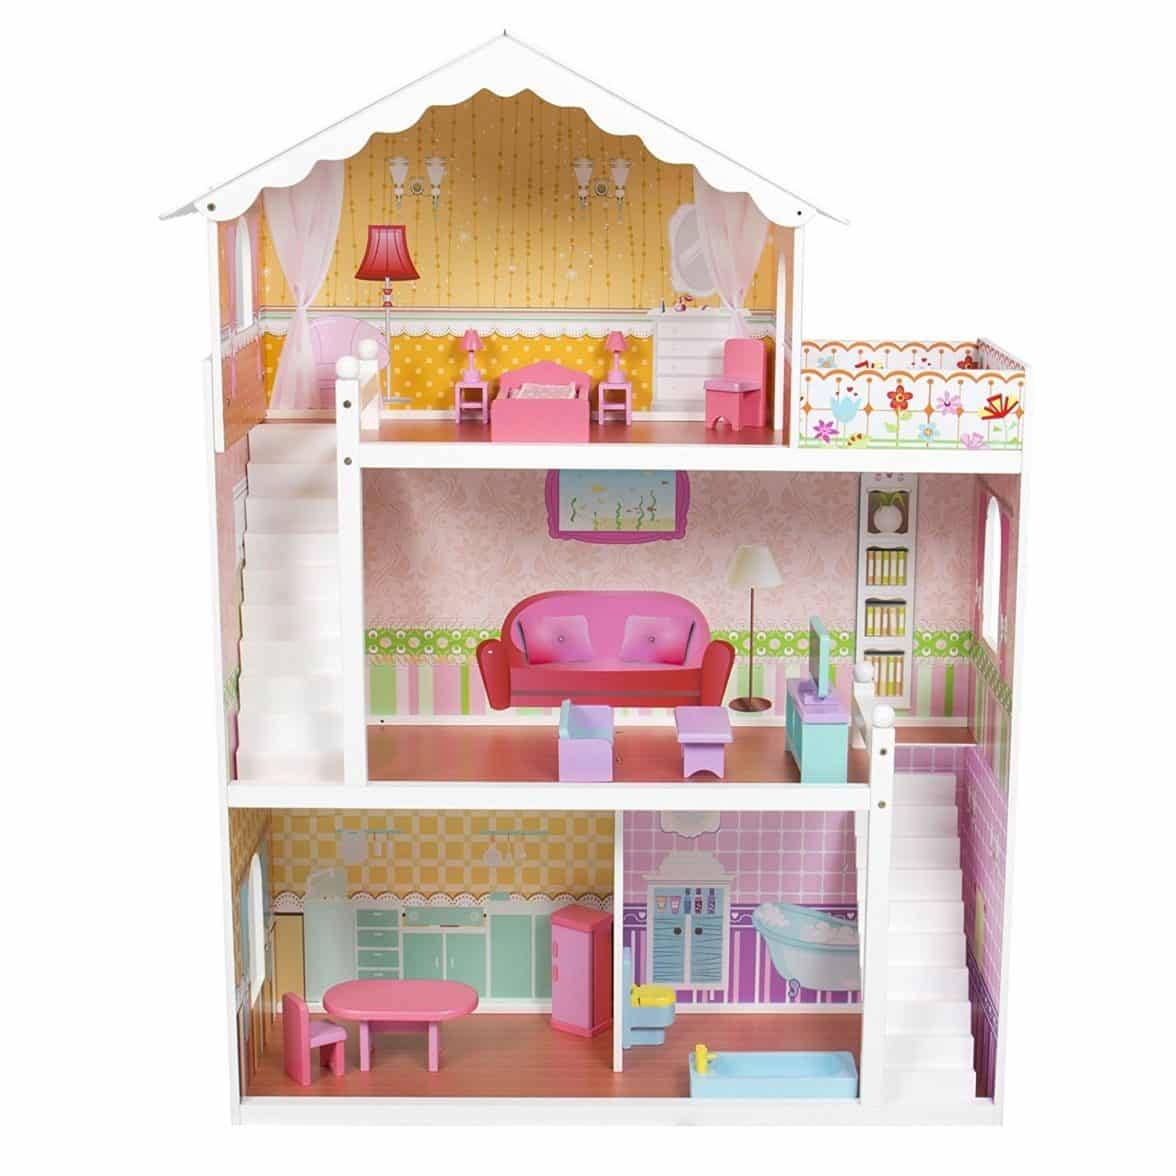 large children 39 s wooden dollhouse fits barbie doll house pink with furniture barbie collectibles. Black Bedroom Furniture Sets. Home Design Ideas